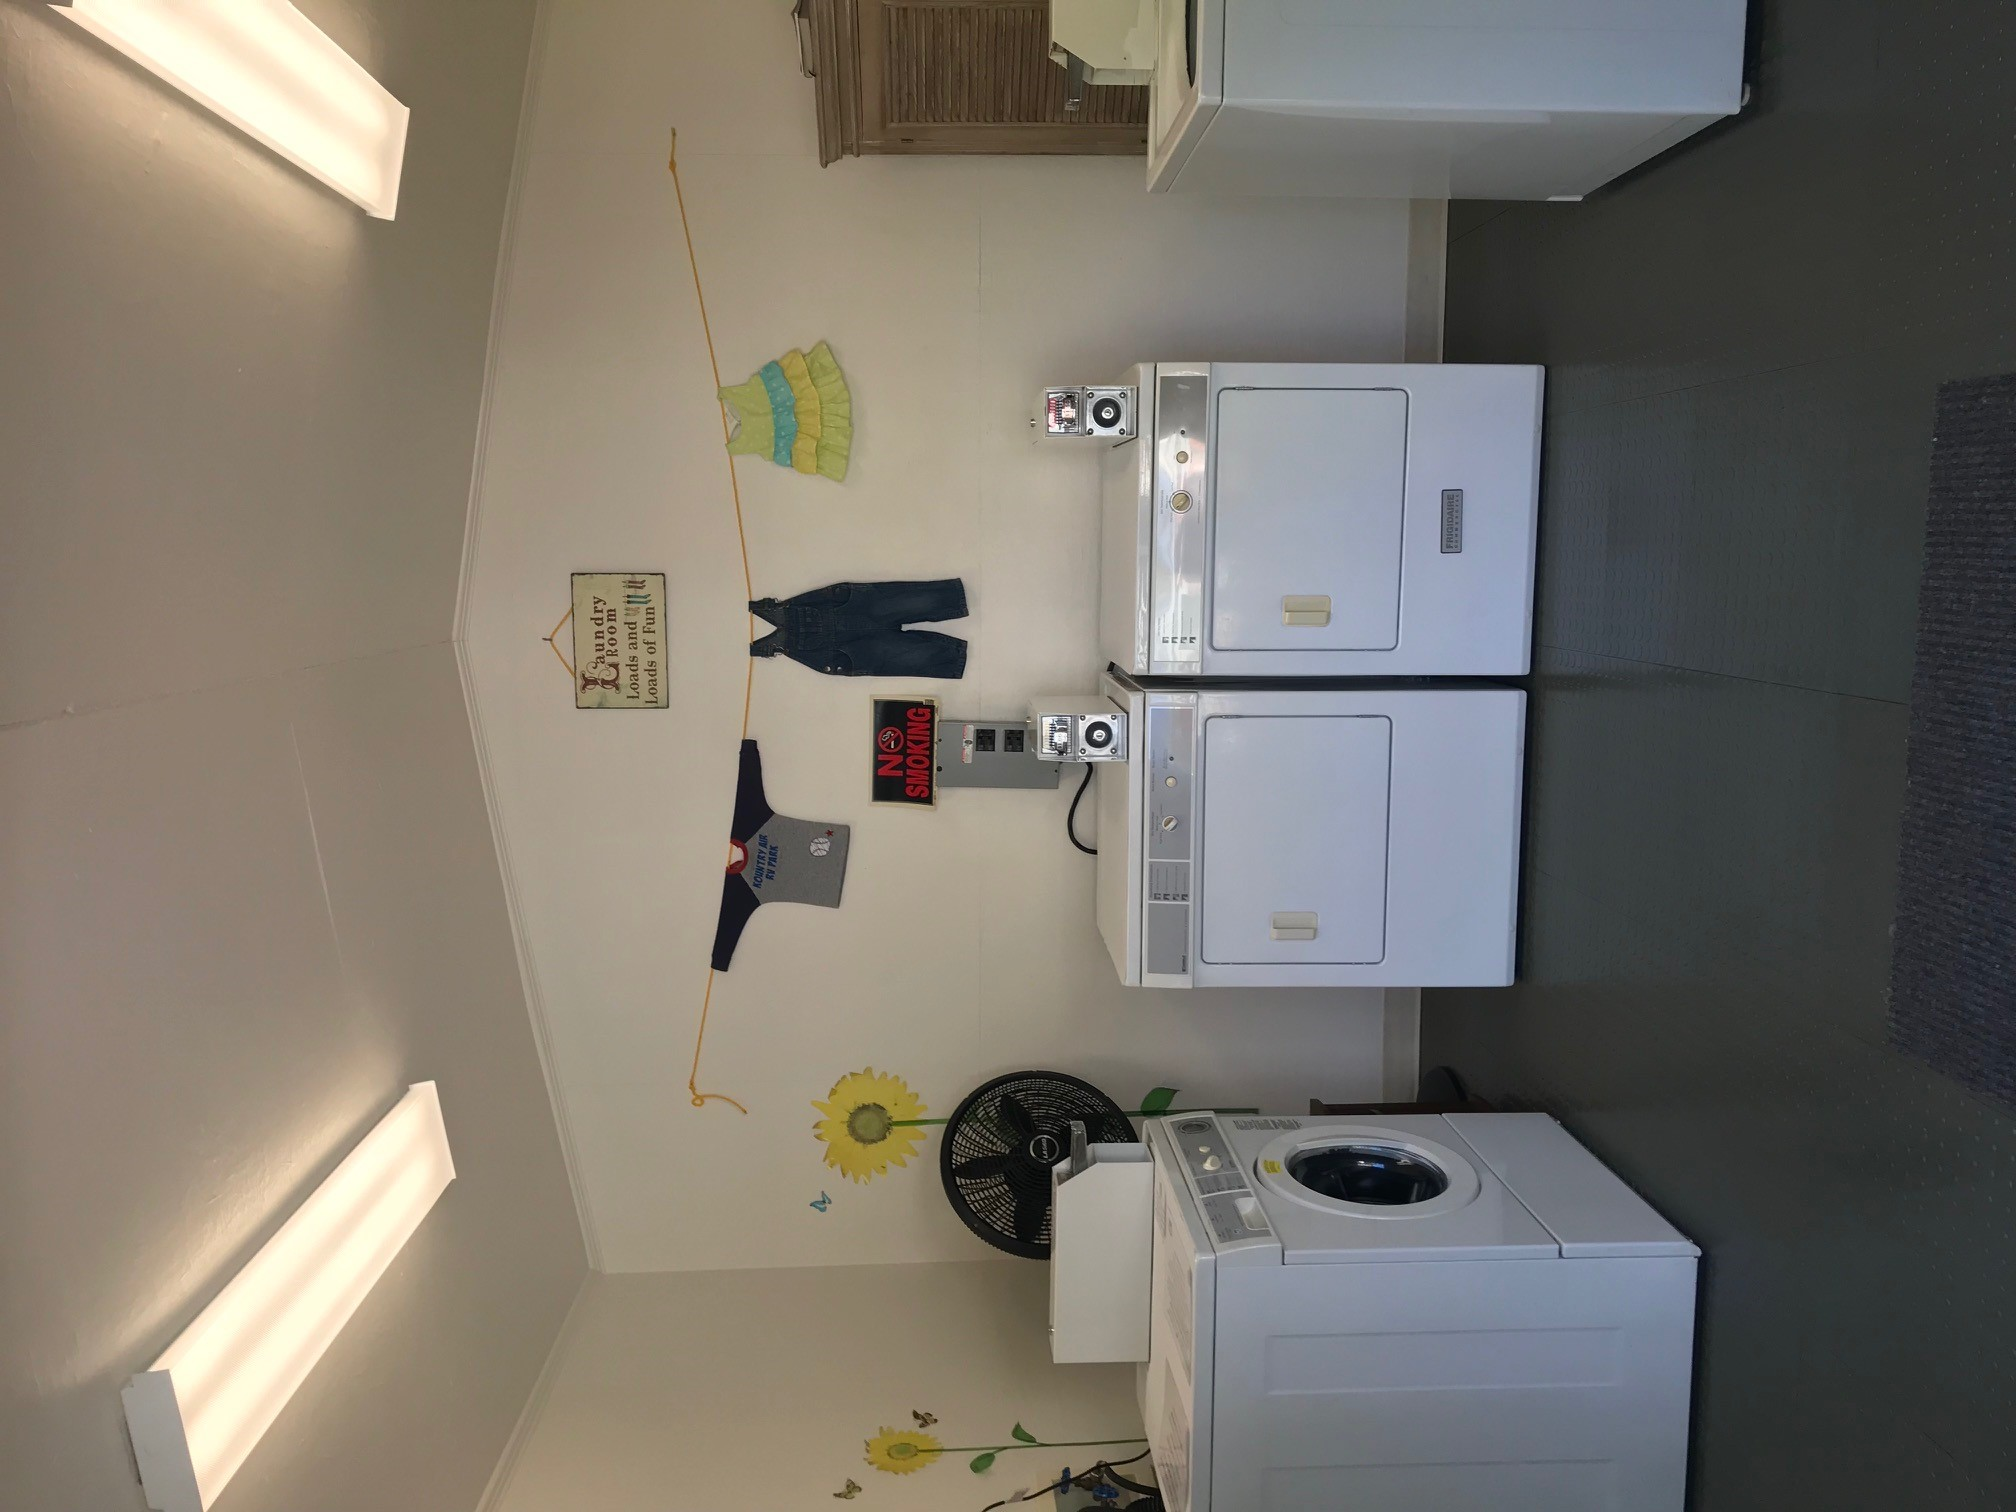 Laundry Facilities - We have 2